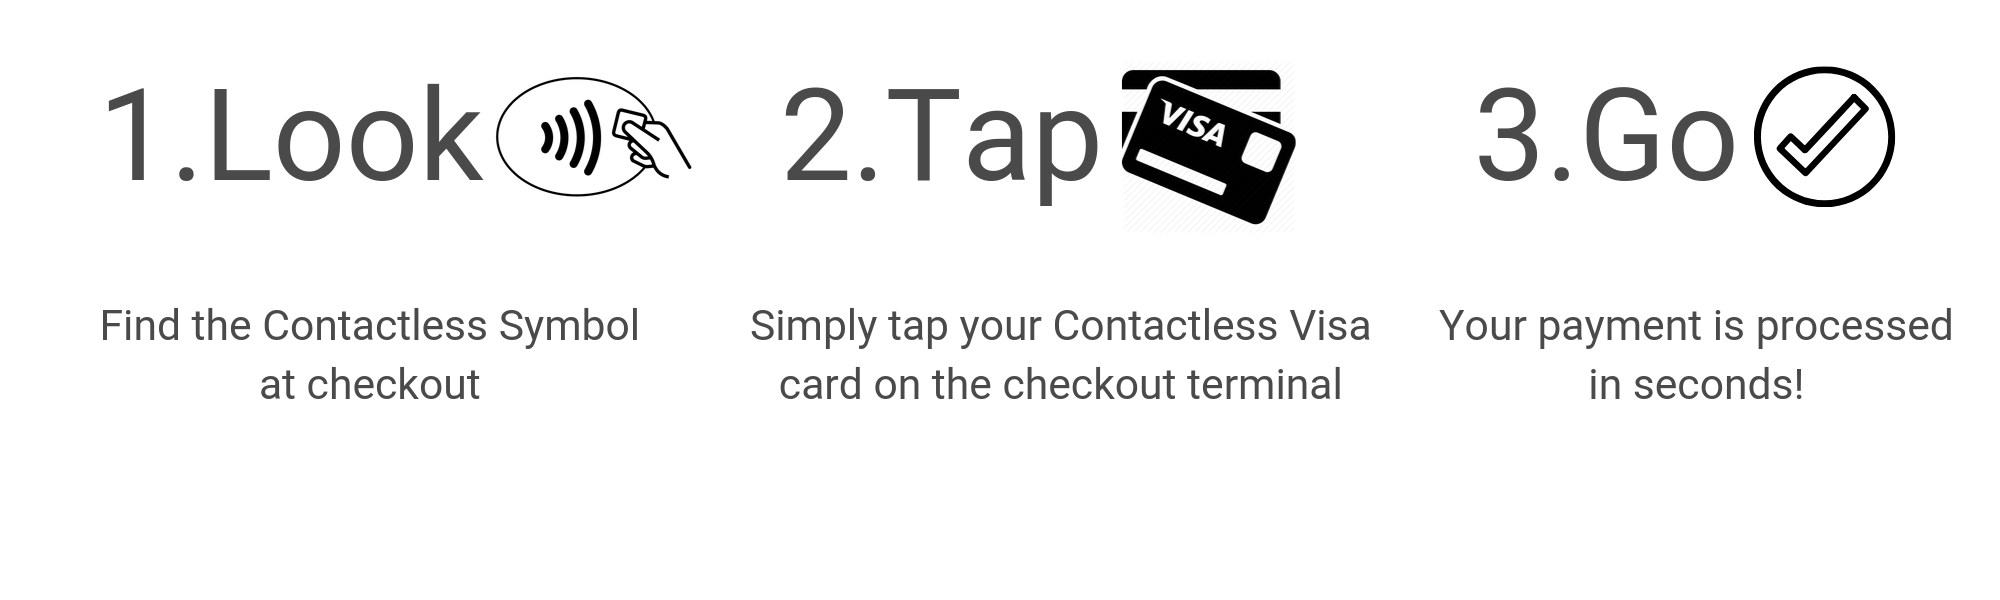 Look Tap Go Contactless Card